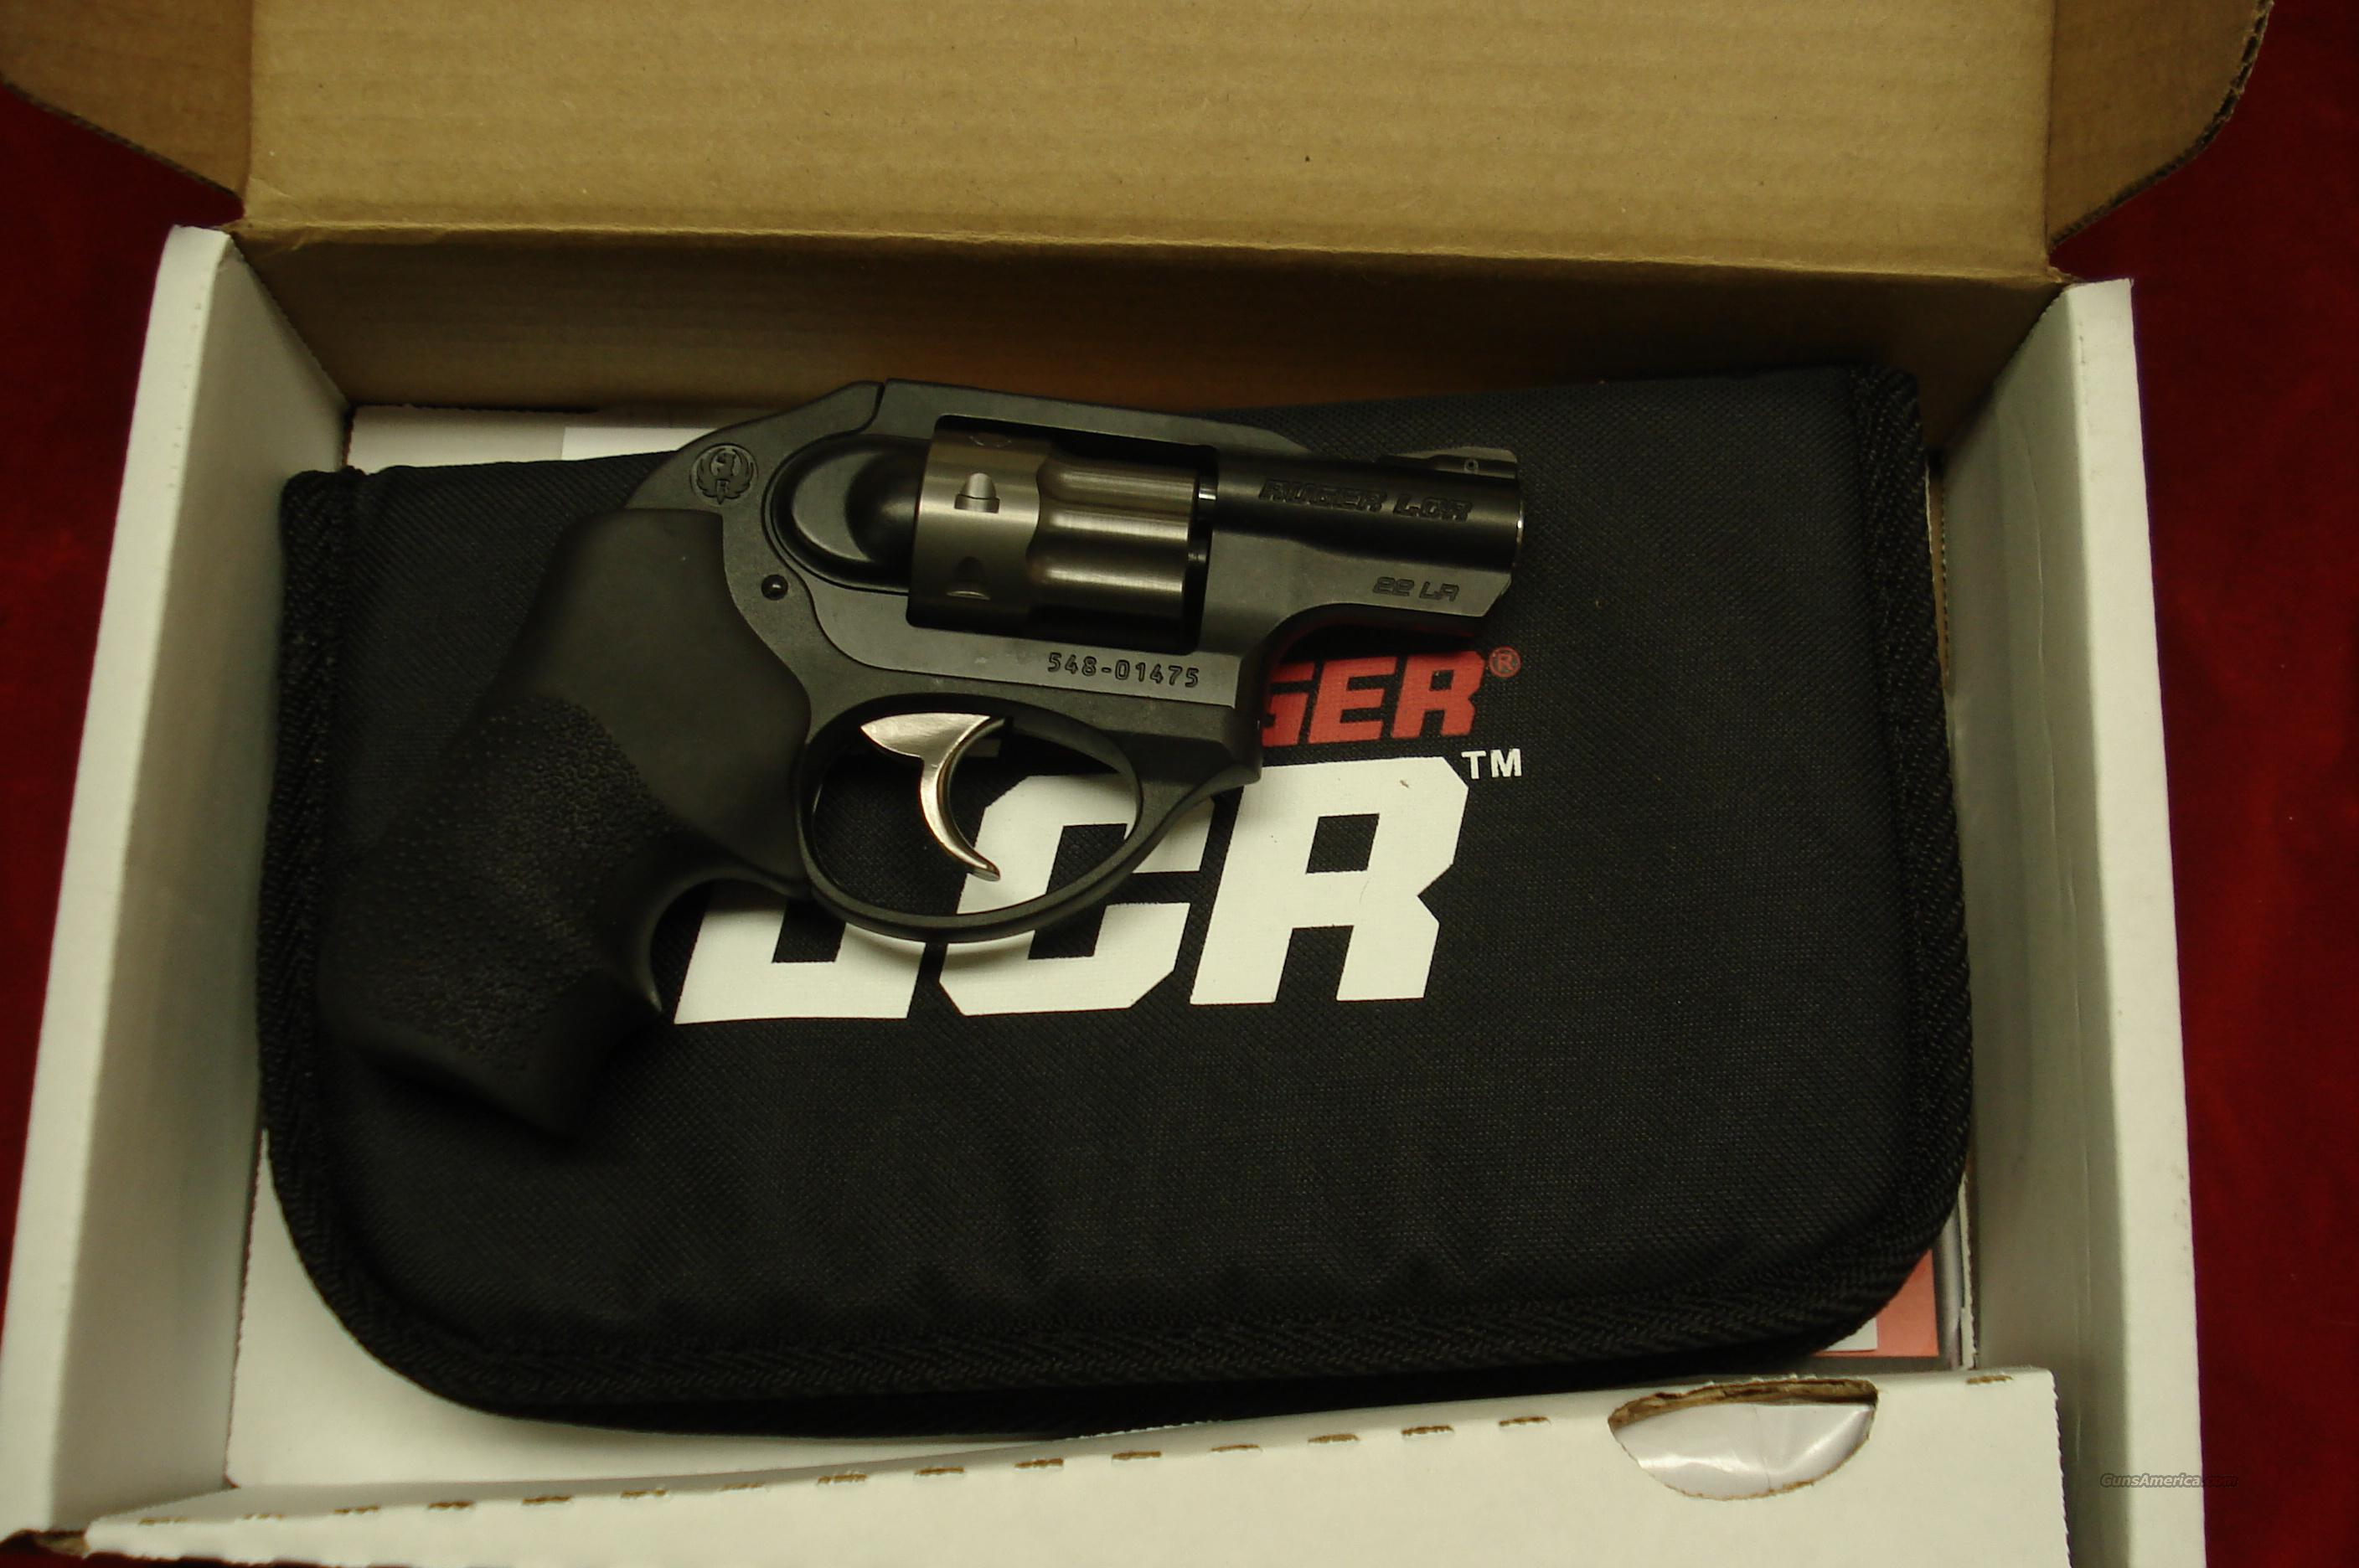 RUGER LCR 22LR CAL. NEW (LCR-22)   Guns > Pistols > Ruger Double Action Revolver > SP101 Type